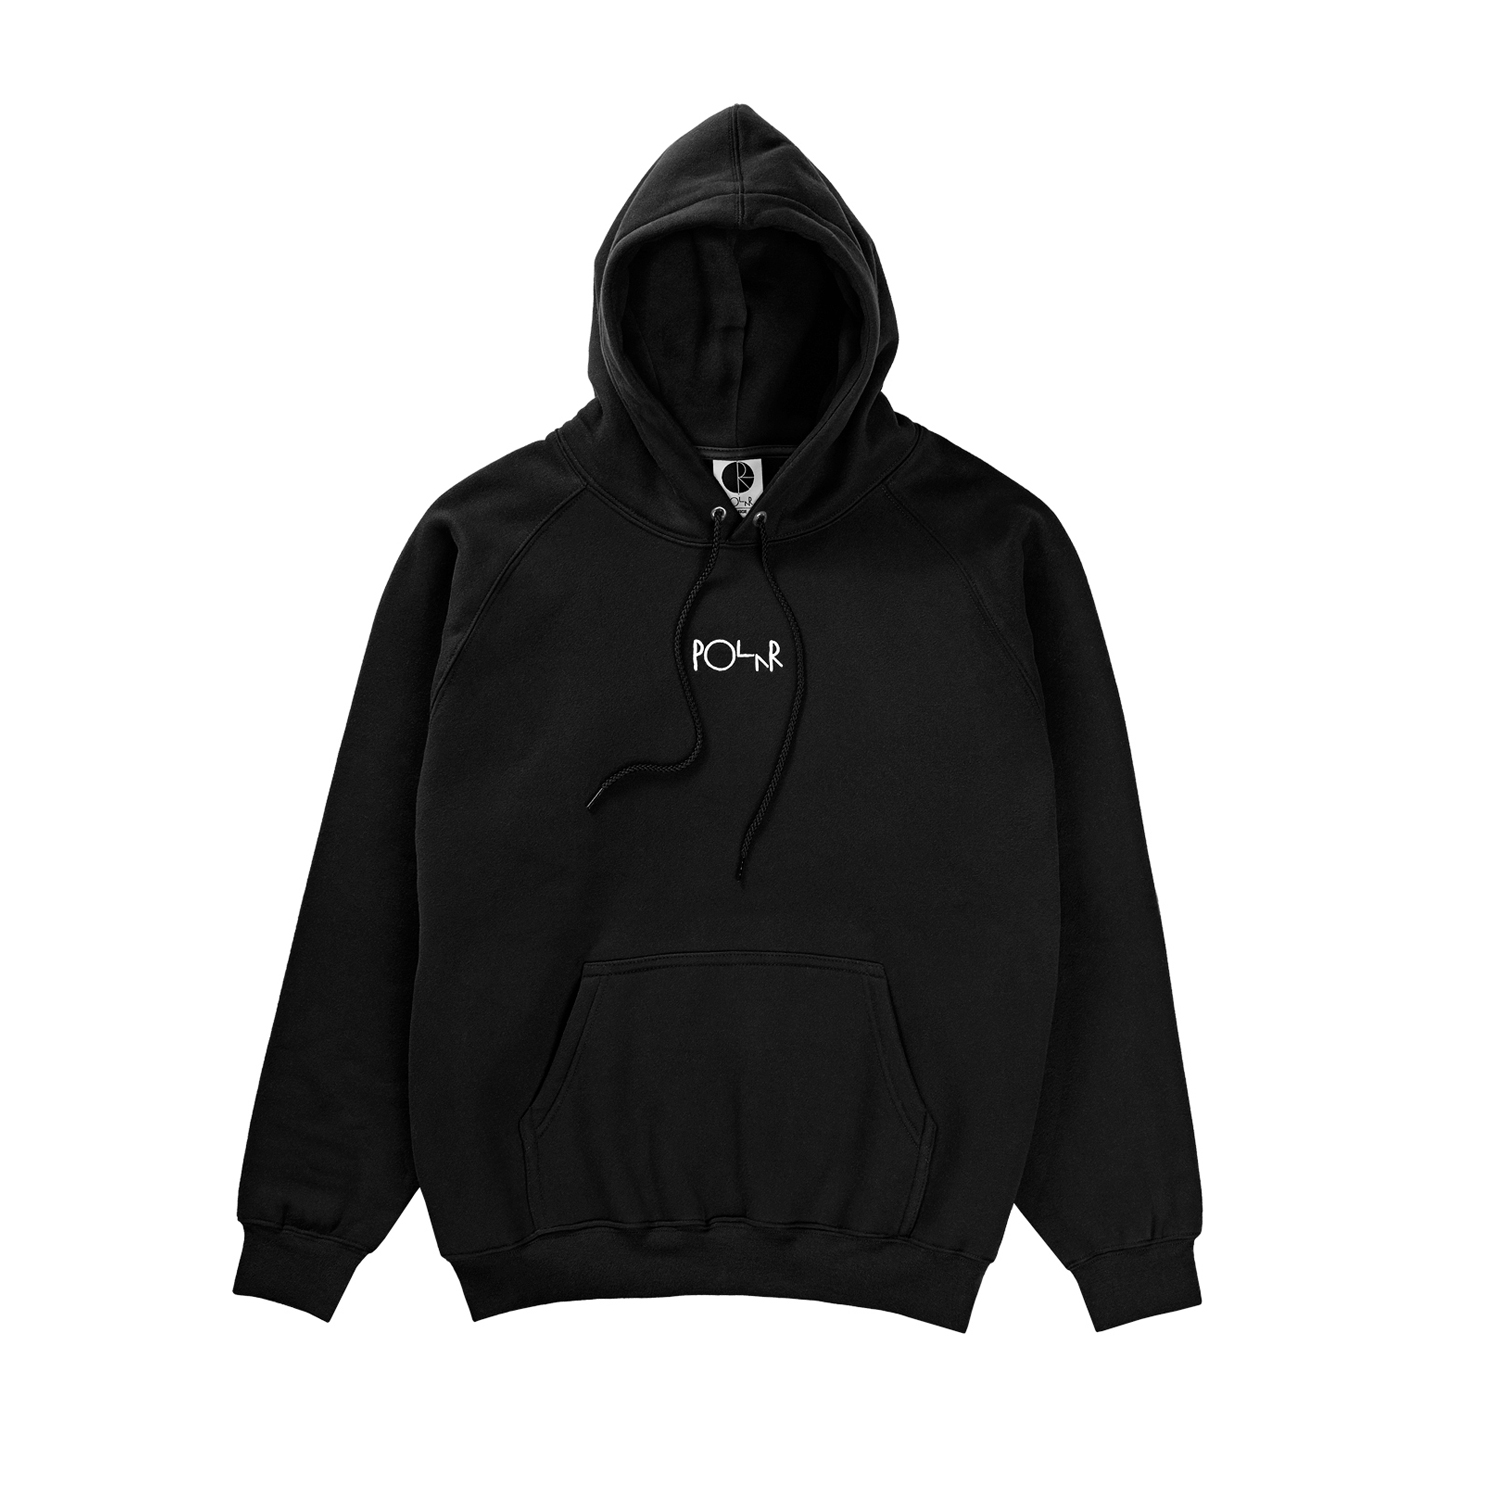 Polar Default Hooded Sweatshirt Black